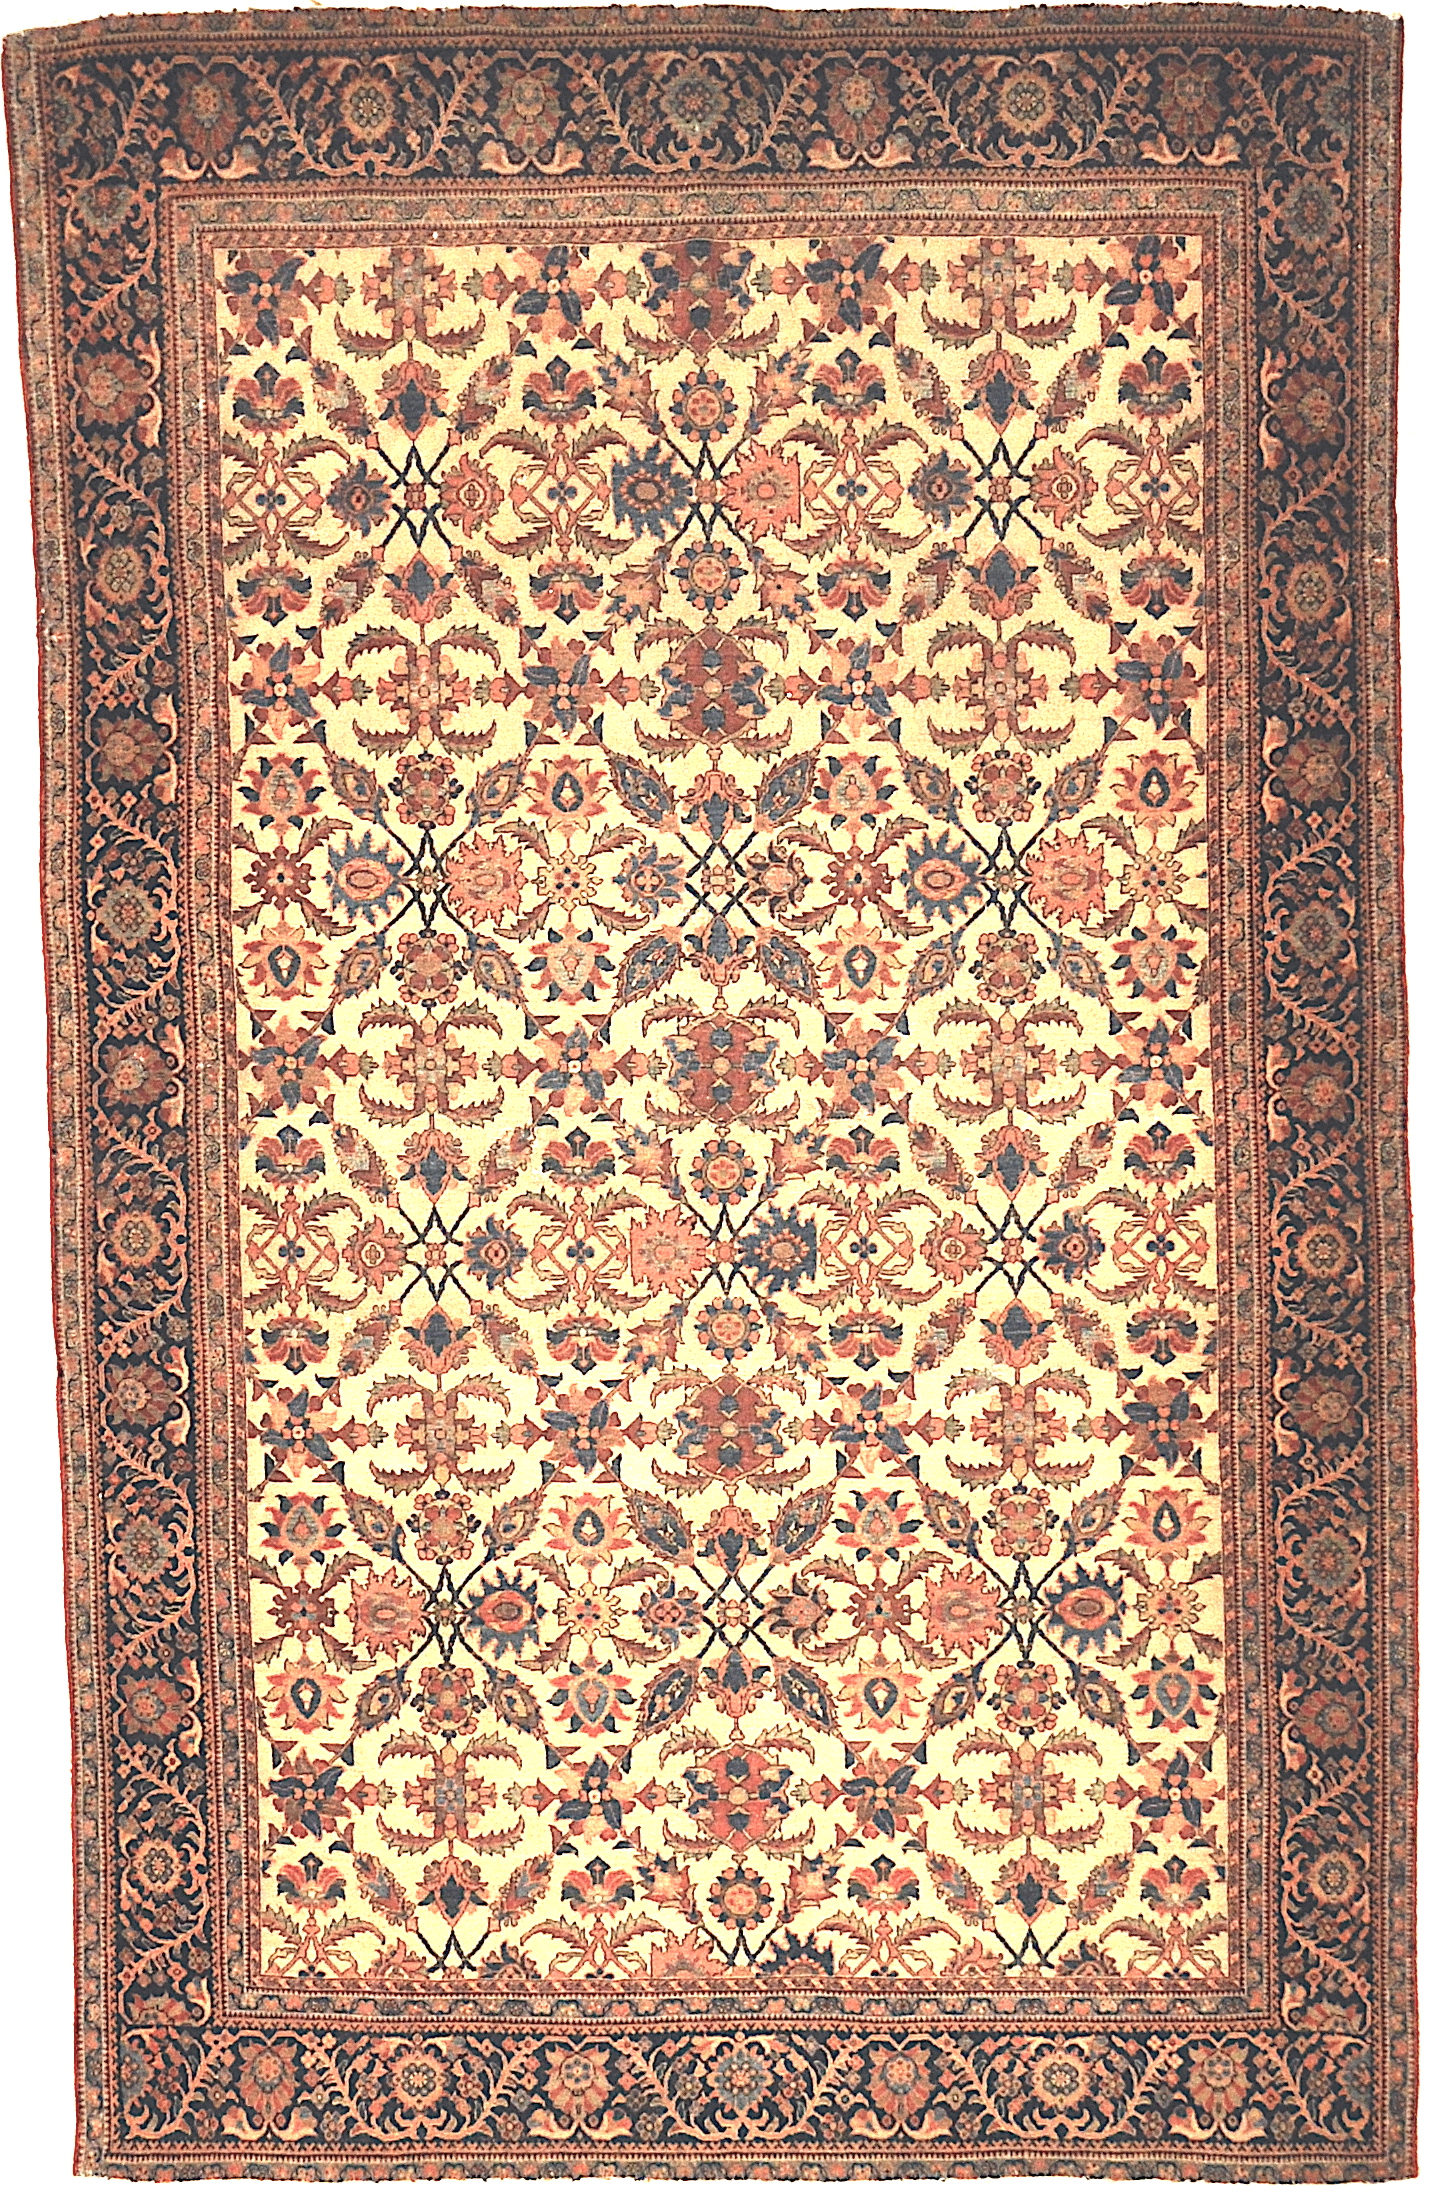 Extraordinarily Finely Knotted Exemplary Farahan Rug With a Classic Design Genuine Woven Carpet Art Santa Barbara Design Center Rugs and More